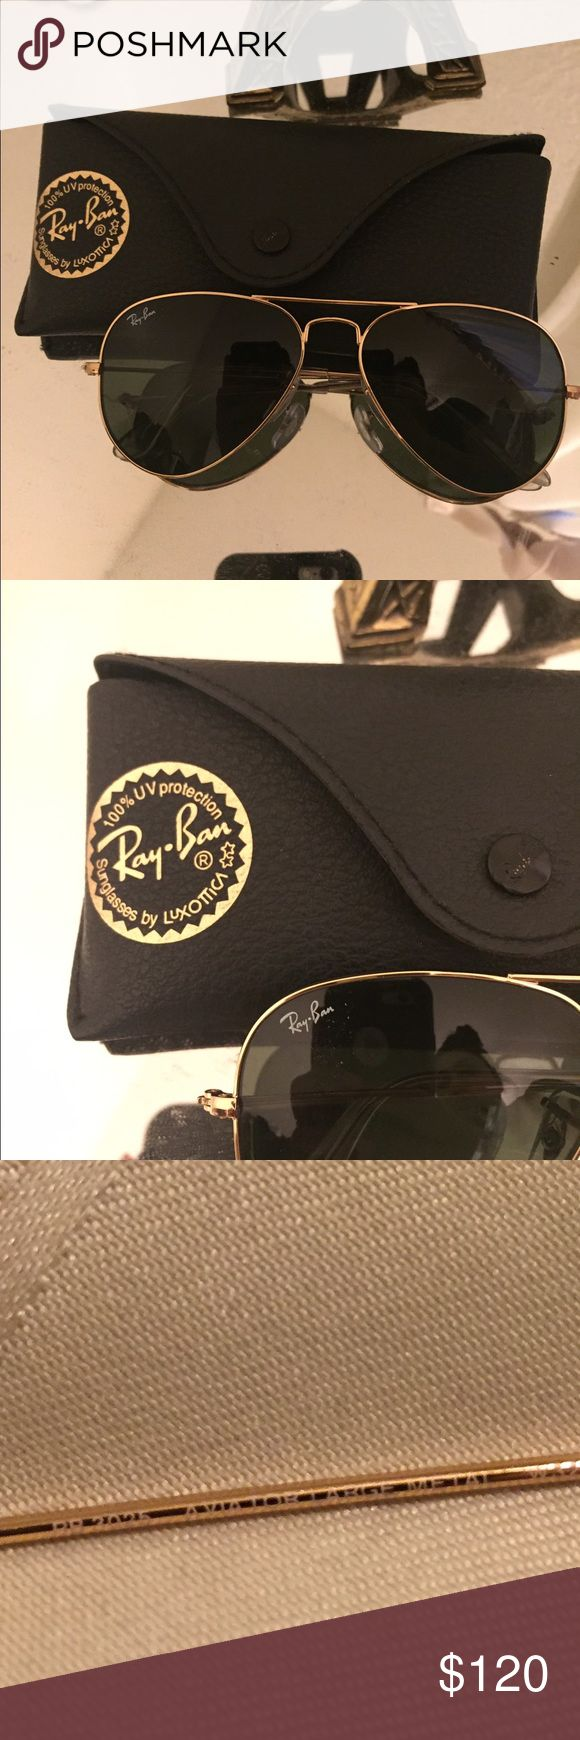 do ray ban sunglasses come with a case  ray ban aviators authentic but never used. will come with case and authenticity card.